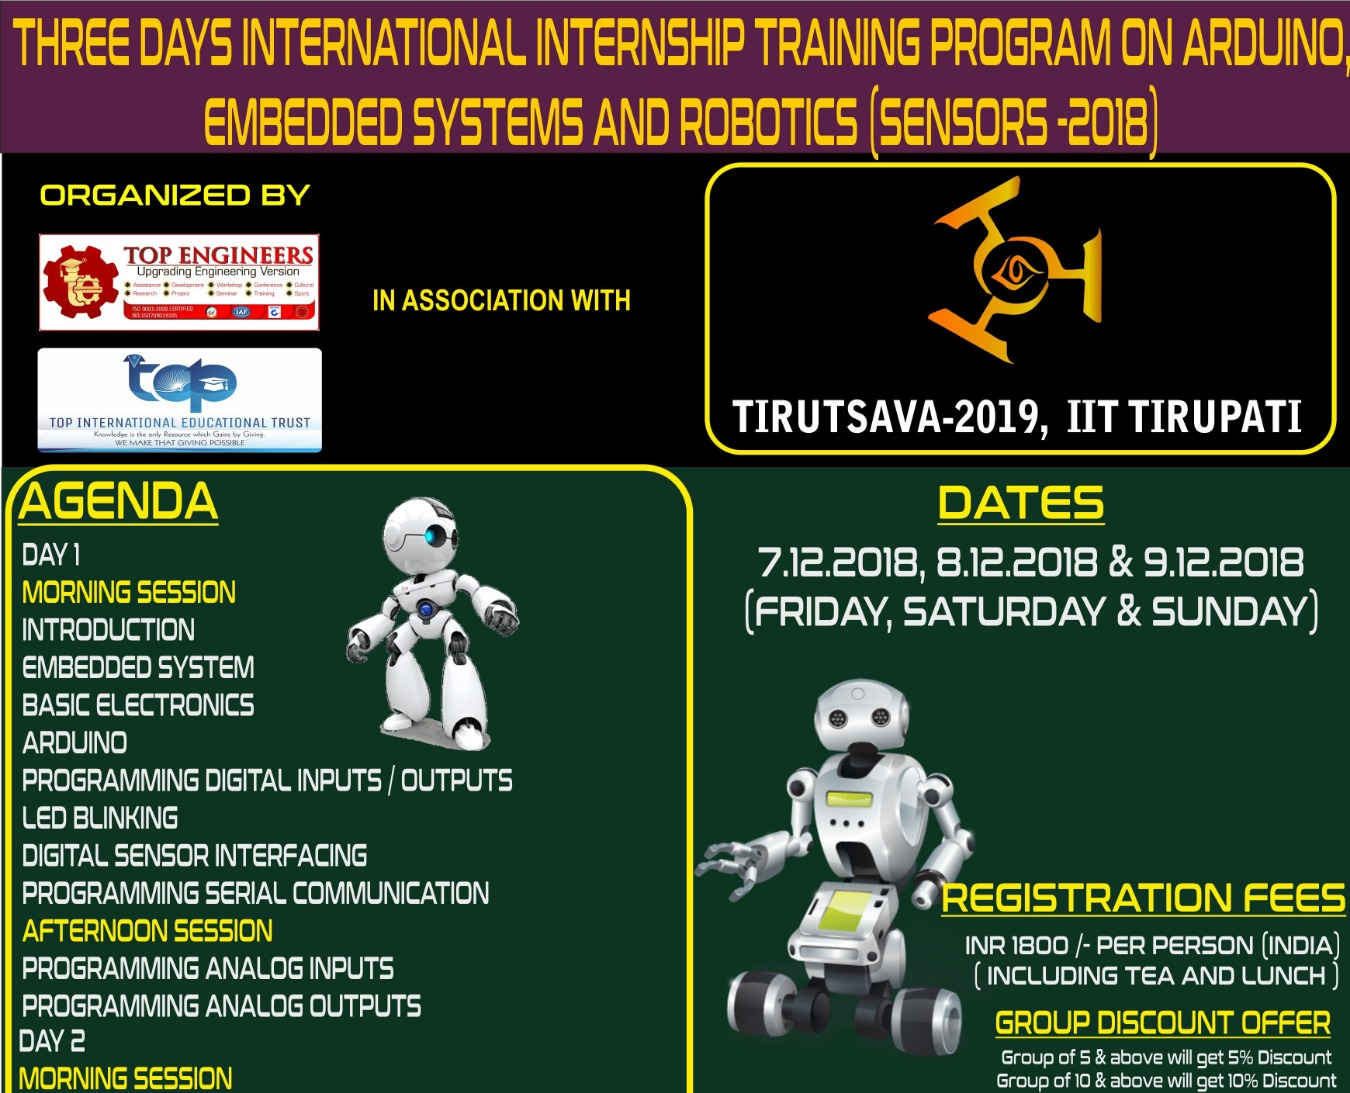 THREE DAYS INTERNATIONAL INTERNSHIP TRAINING PROGRAM ON ARDUINO, EMBEDDED  SYSTEMS AND ROBOTICS Tickets by Ercess Live, 7 Dec, 2018, Chennai Event